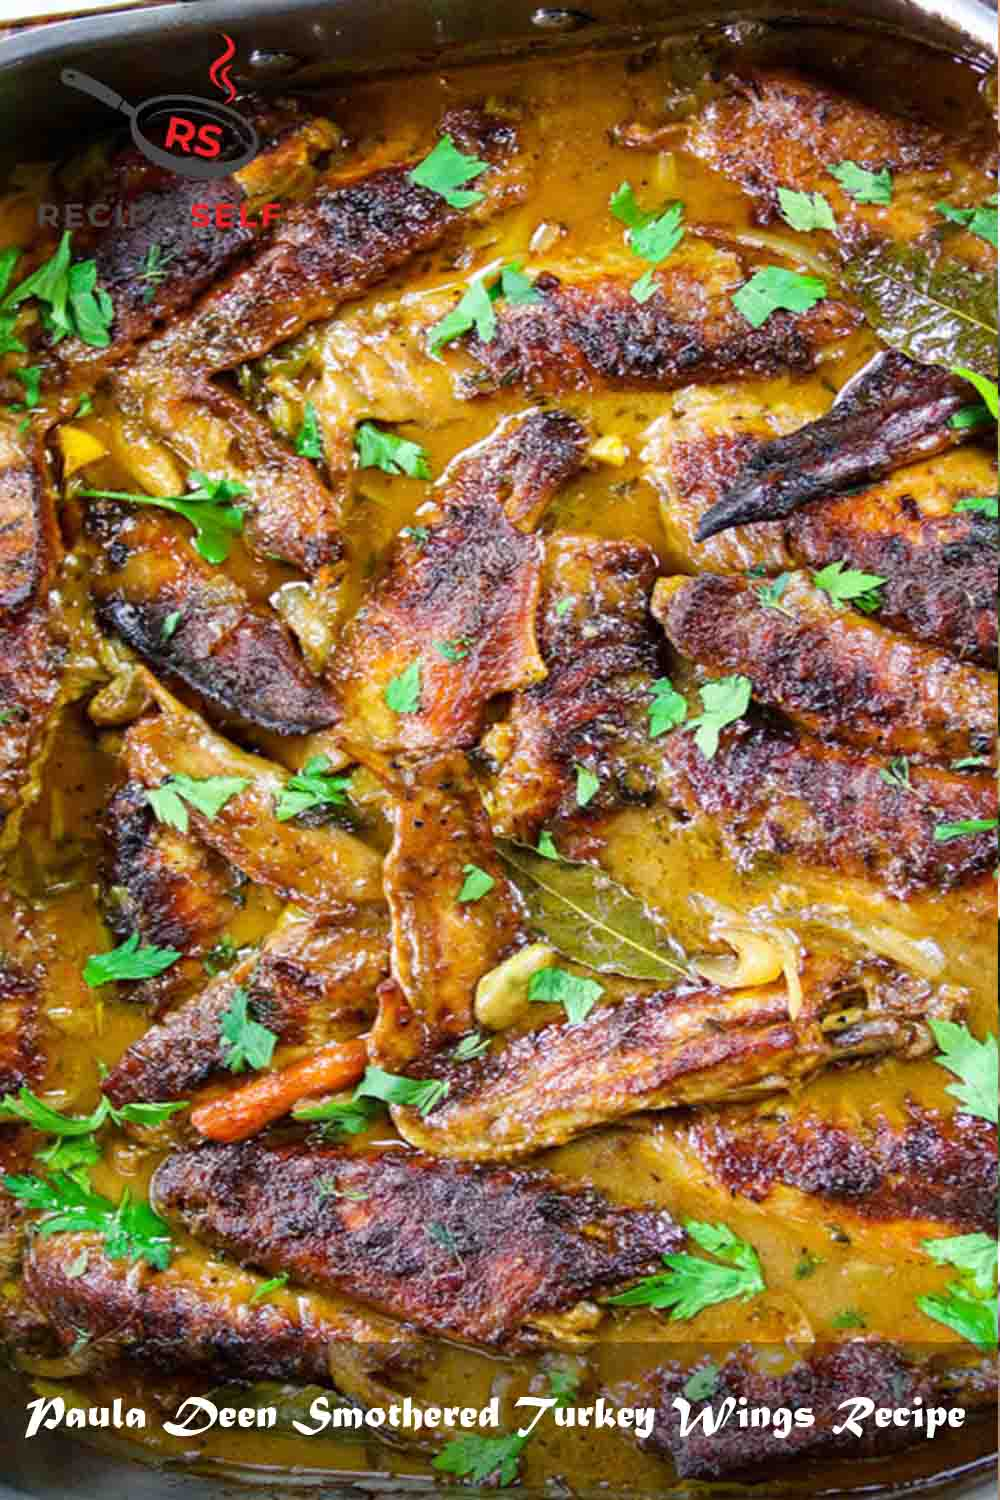 Paula Deen Smothered Turkey Wings Recipe